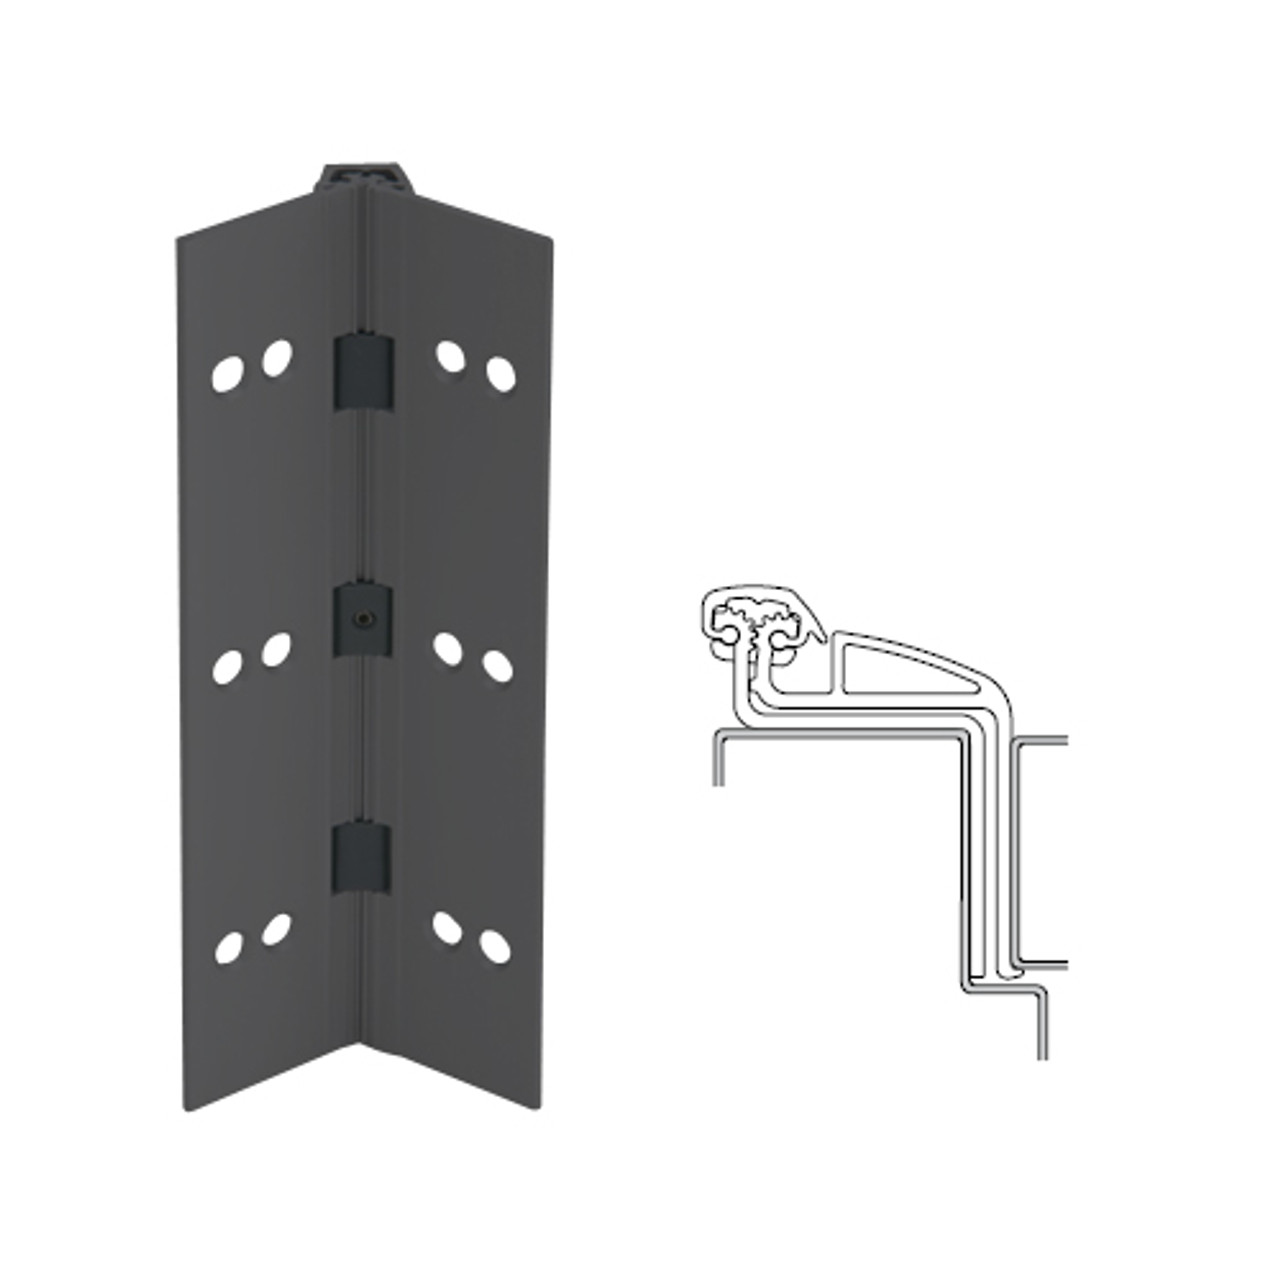 041XY-315AN-85-SECWDHM IVES Full Mortise Continuous Geared Hinges with Security Screws - Hex Pin Drive in Anodized Black